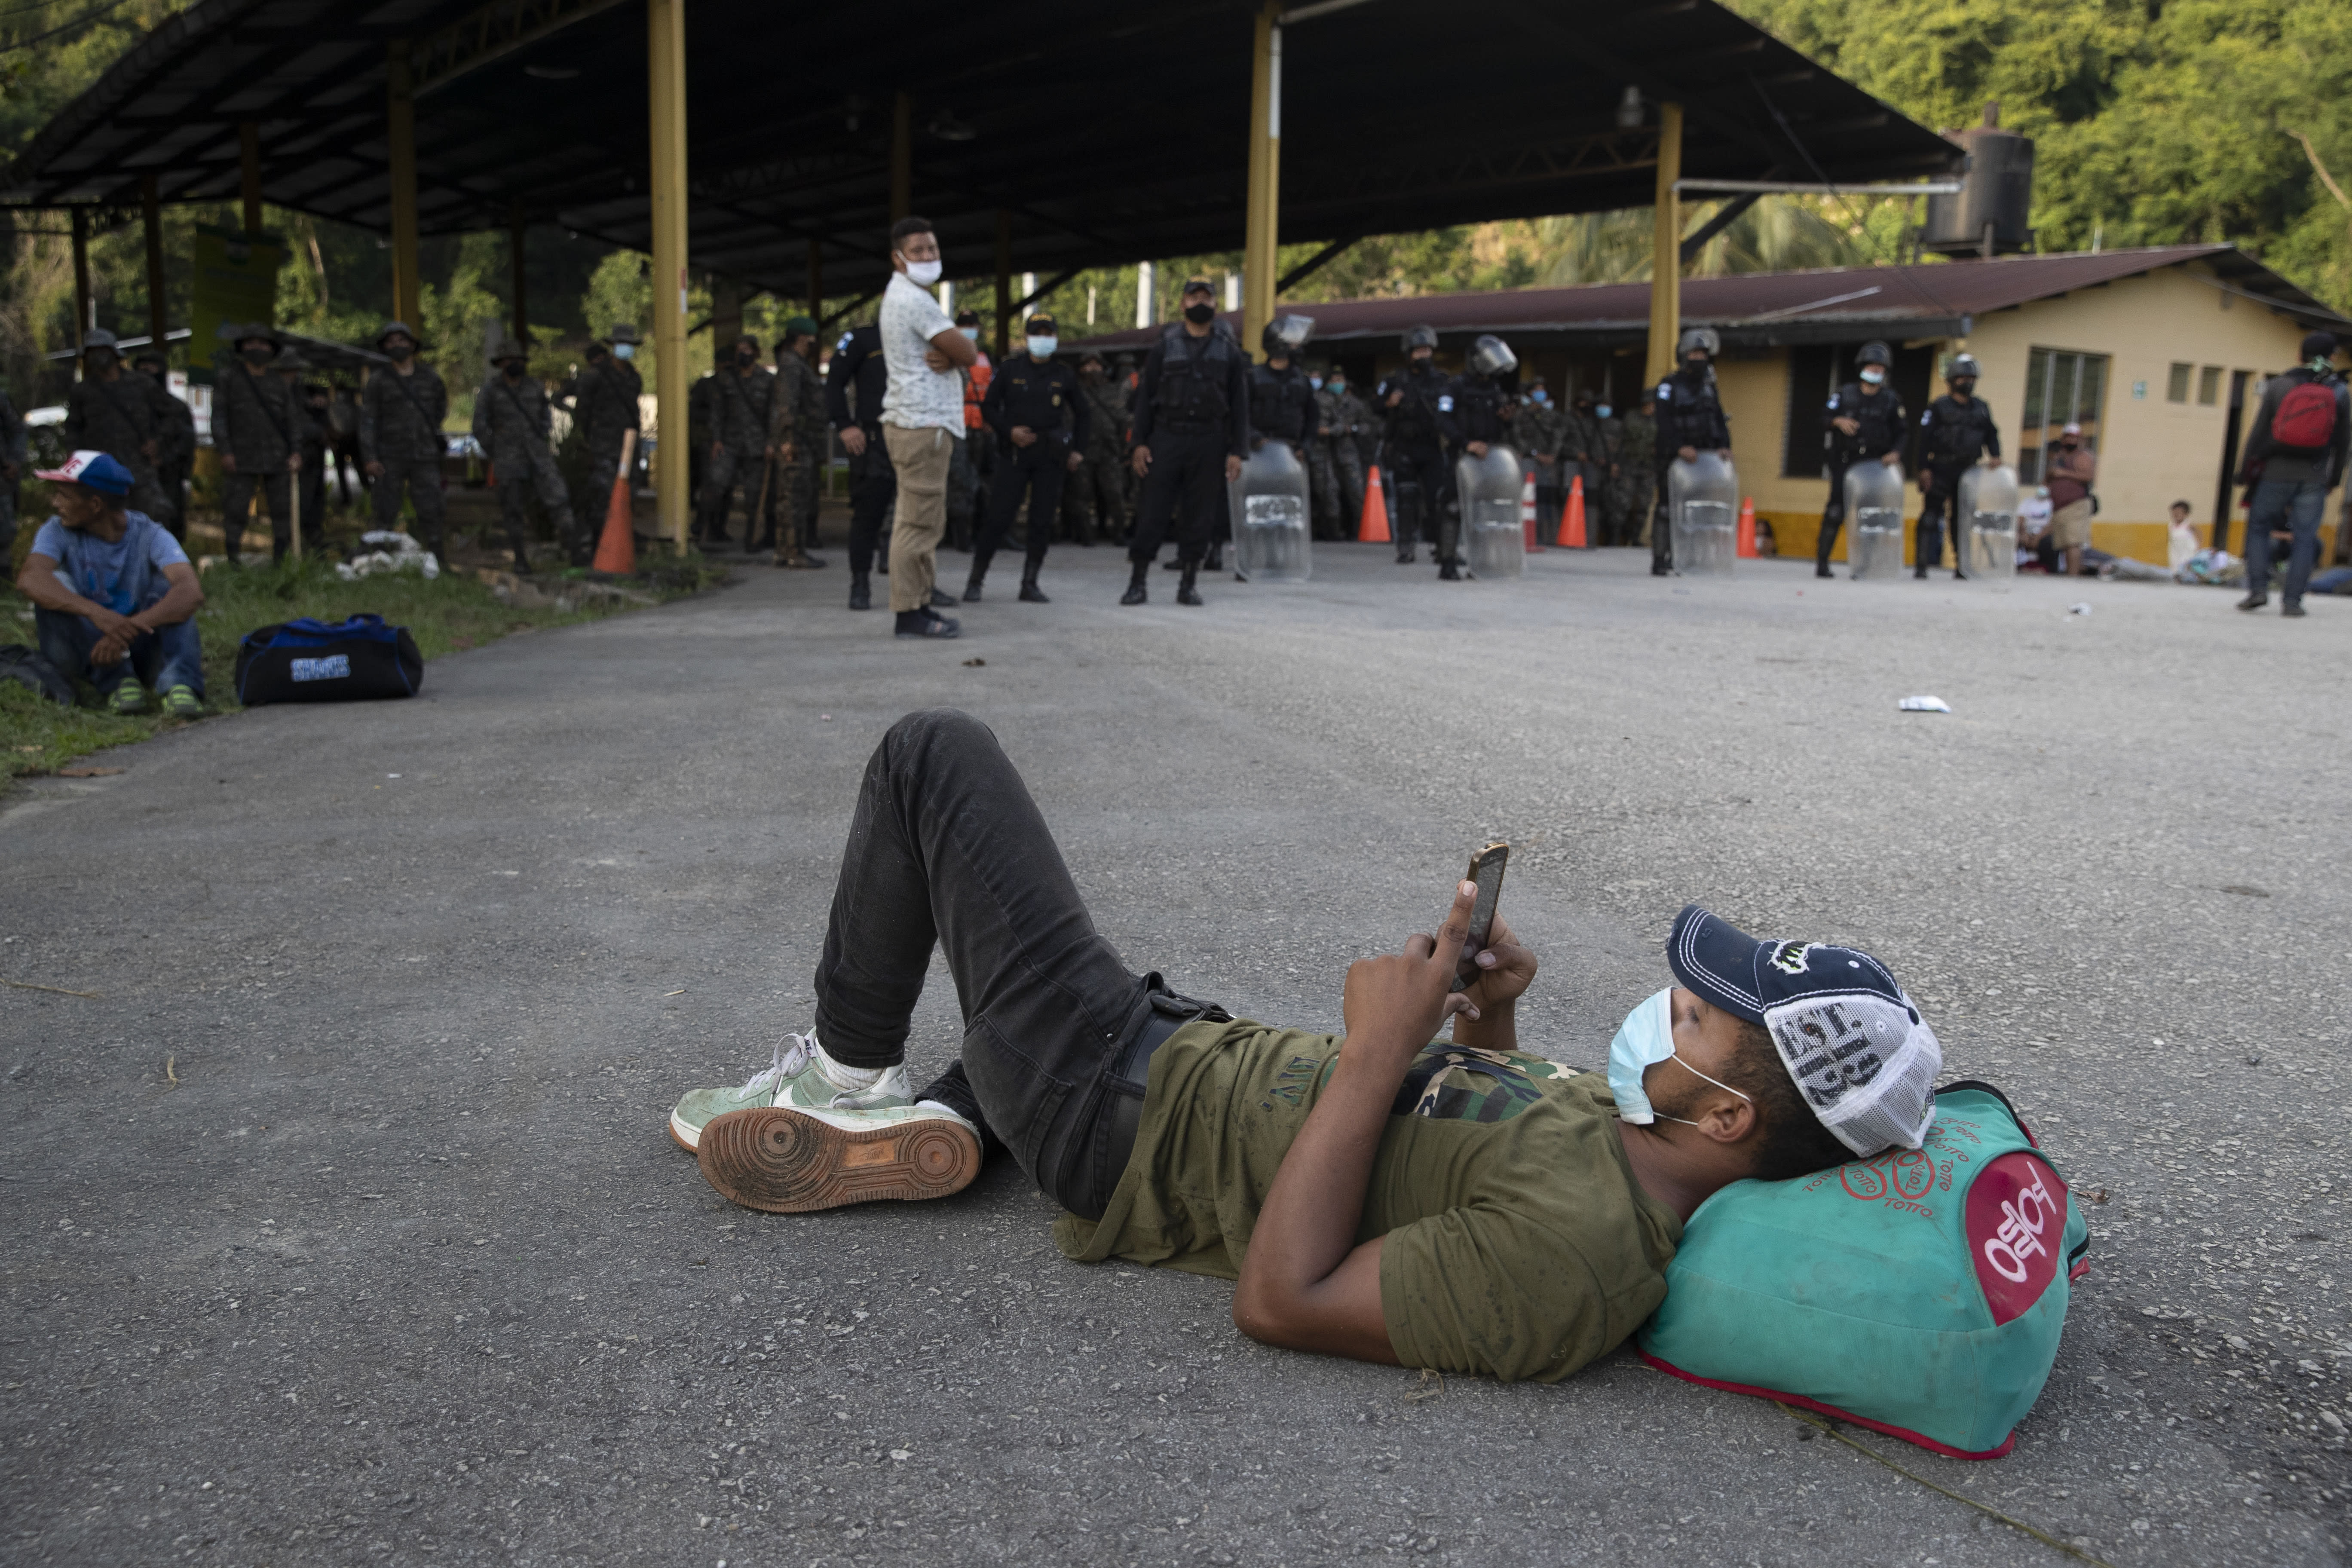 An Honduran migrant rests in front of a road block set by security forces in Poptun, Guatemala, Friday, Oct. 2, 2020. Guatemala vowed to detain and return members of a caravan of hundreds of migrants that set out from neighboring Honduras in hopes of reaching the United States, saying they represent a health threat amid the coronavirus pandemic. (AP Photo/Moises Castillo)